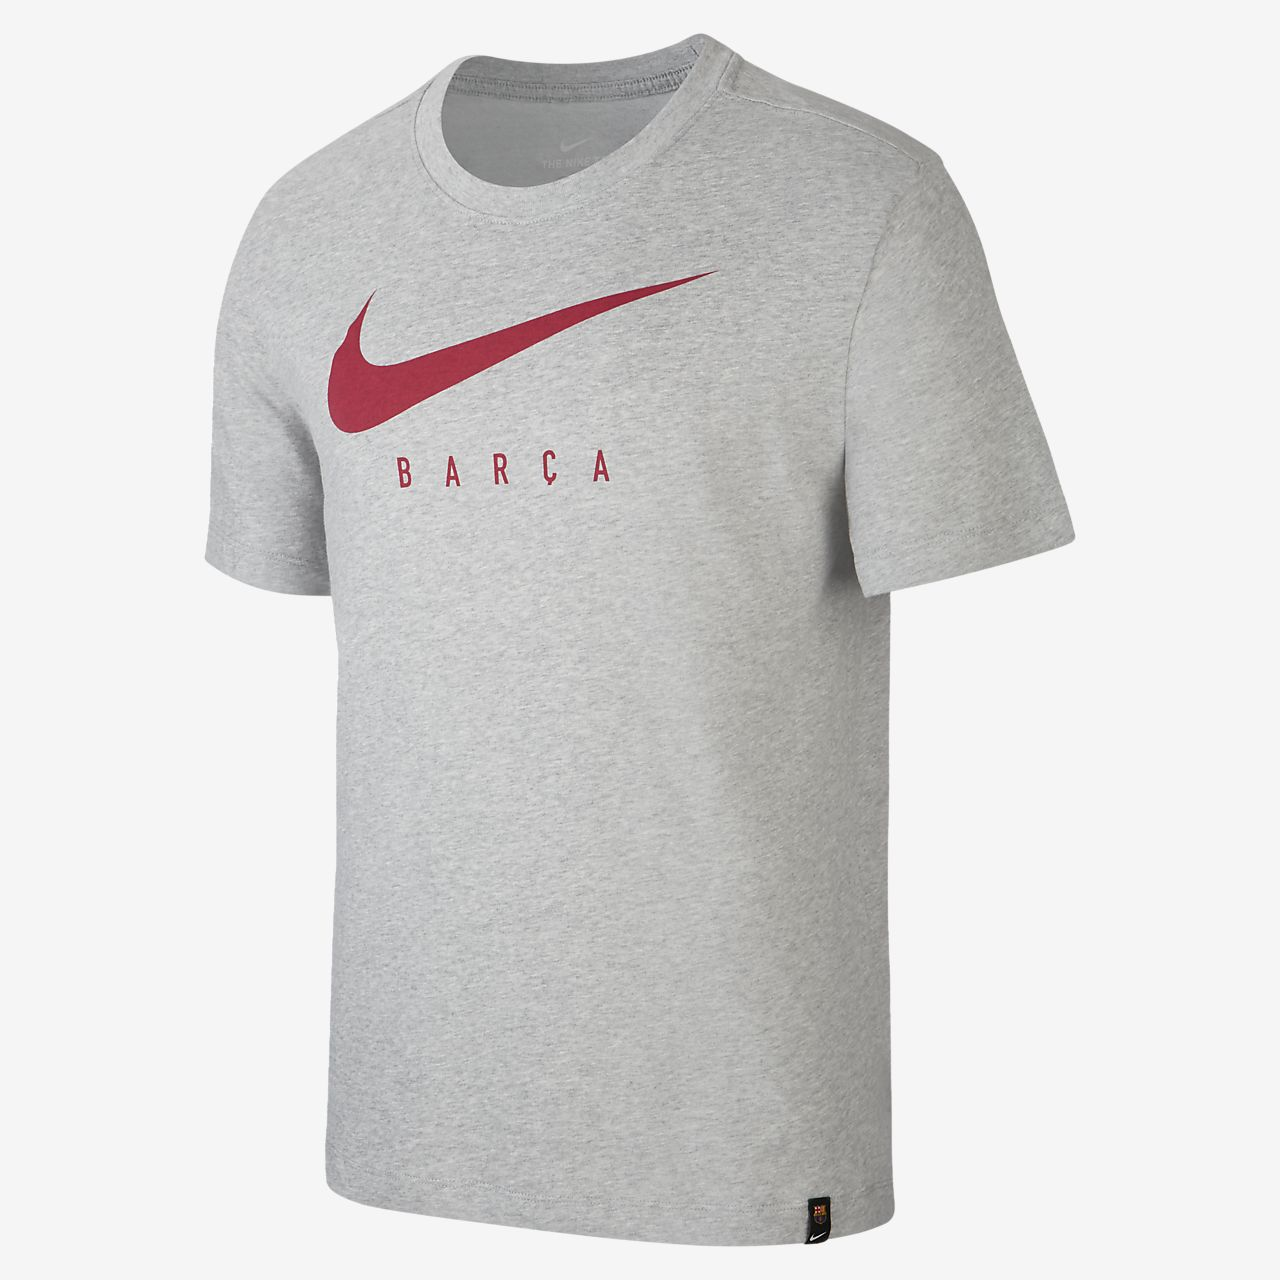 5440ebe8d4 Nike Dri-FIT FC Barcelona Men's Football T-Shirt. Nike.com HU